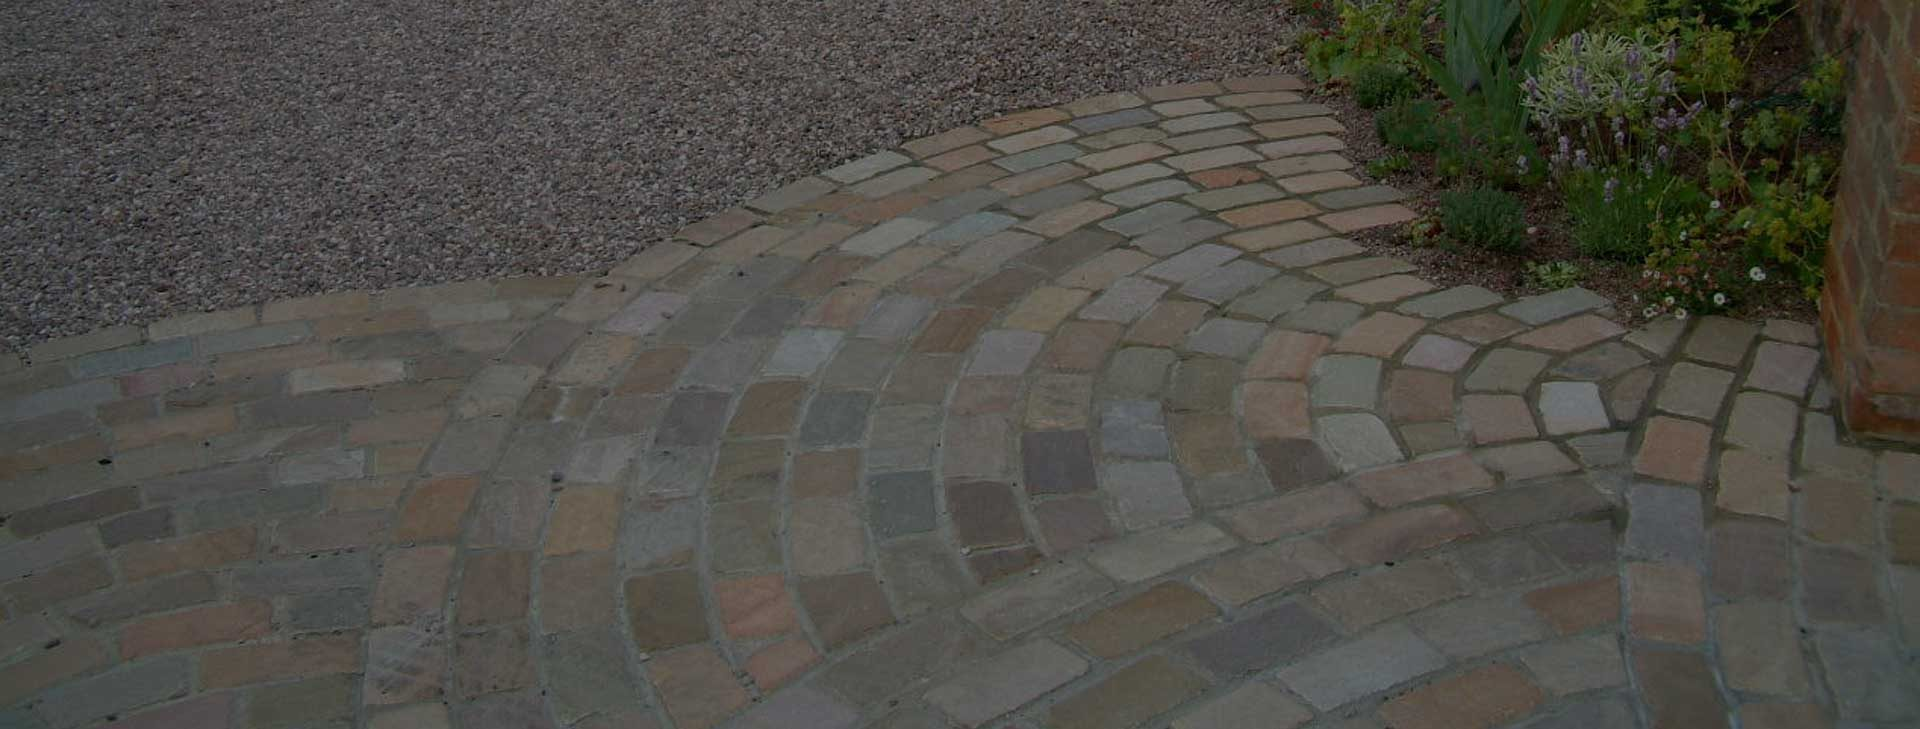 We provide landscaping services since 1991